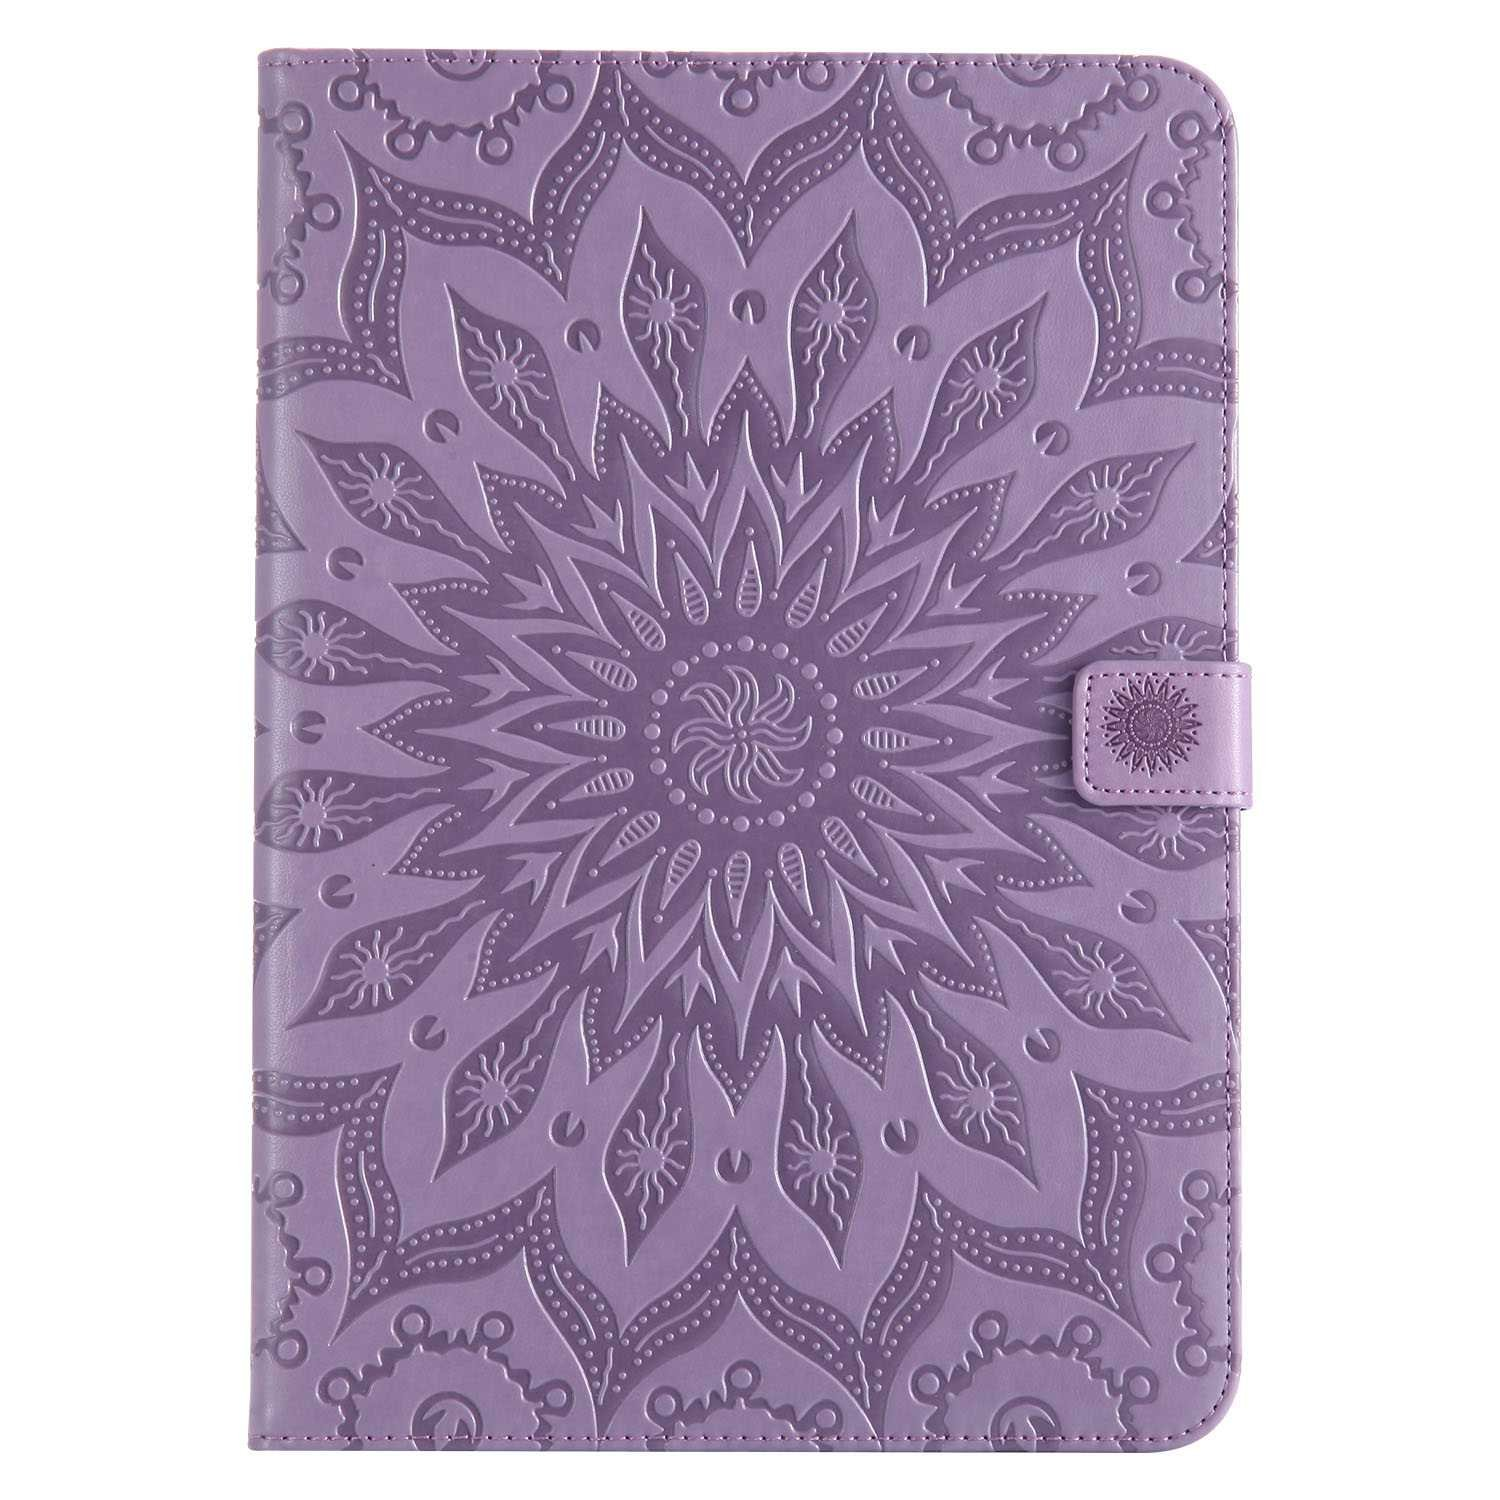 Bear Village Galaxy Tab a 9.7 Inch Case, Anti Scratch Shell with Adjust Stand, Full Body Protective Cover for Samsung Galaxy Tab a 9.7 Inch, Purple